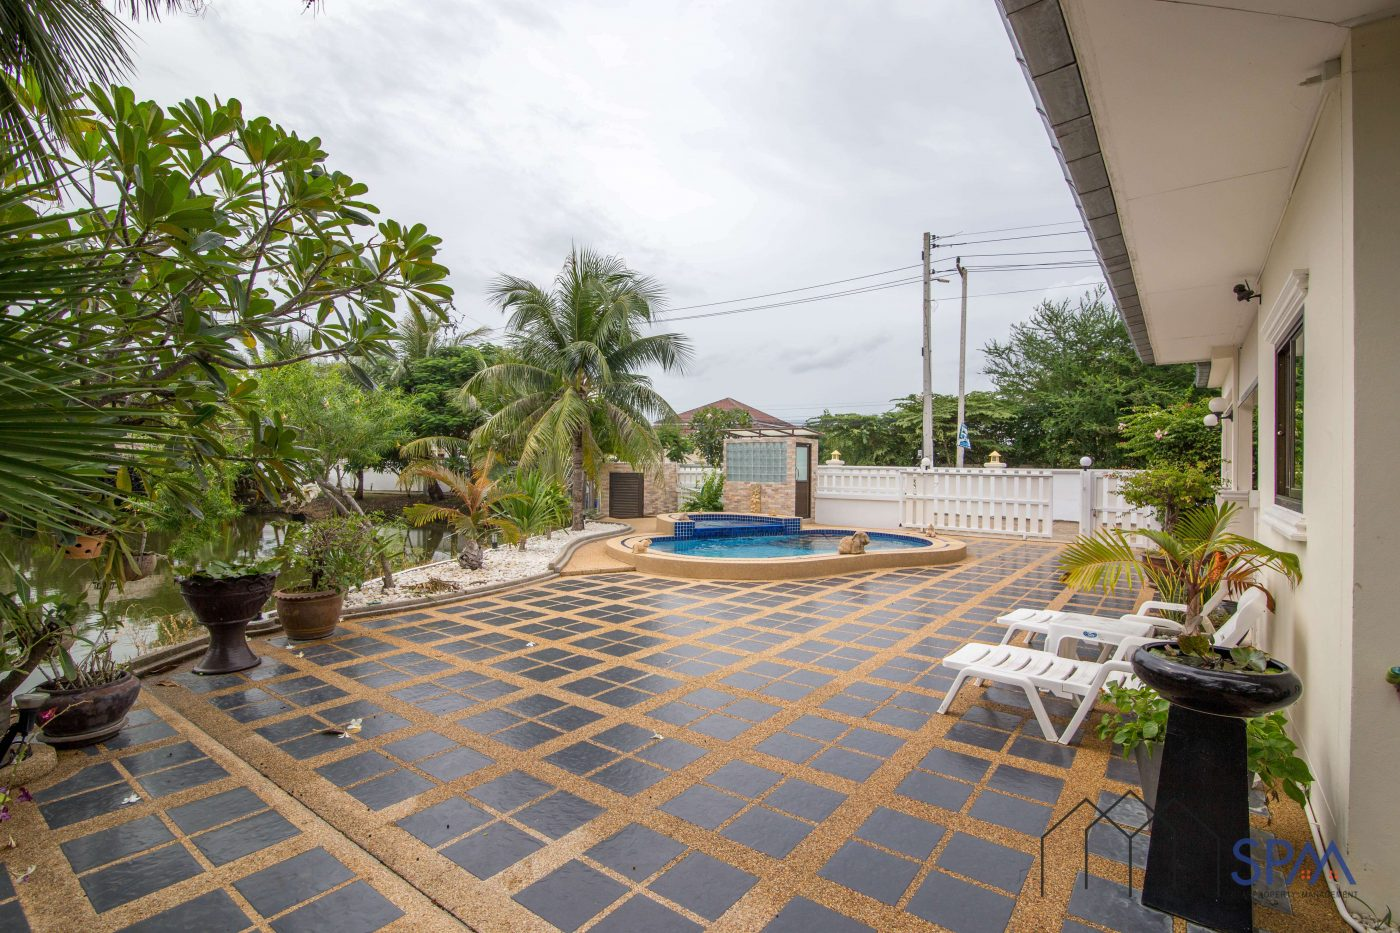 house for rent with pool and garden